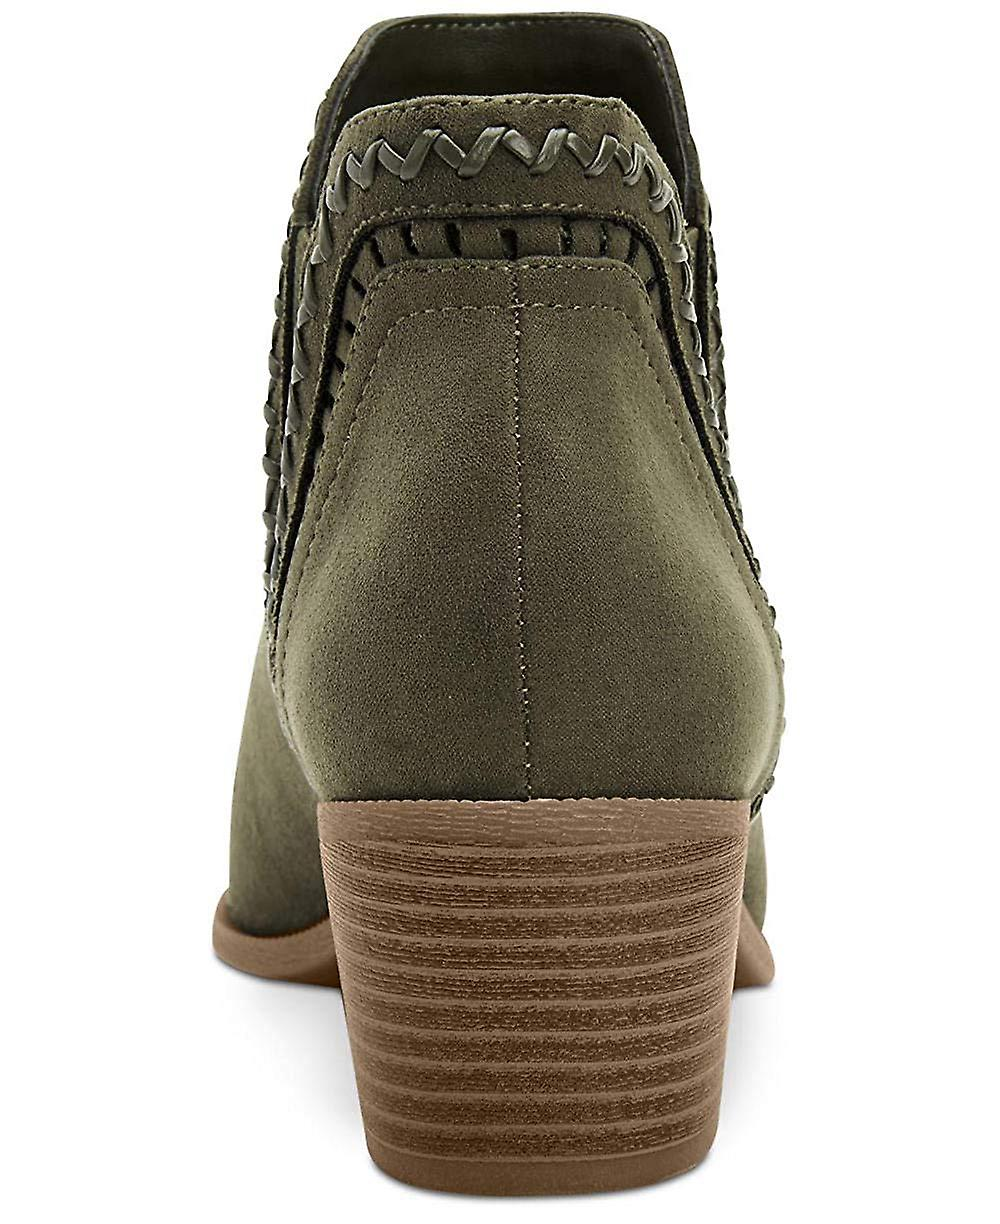 Style et Cie. Femmes 'apos;s Meridaa Ankle Booties Peat Green 7M - Remise particulière